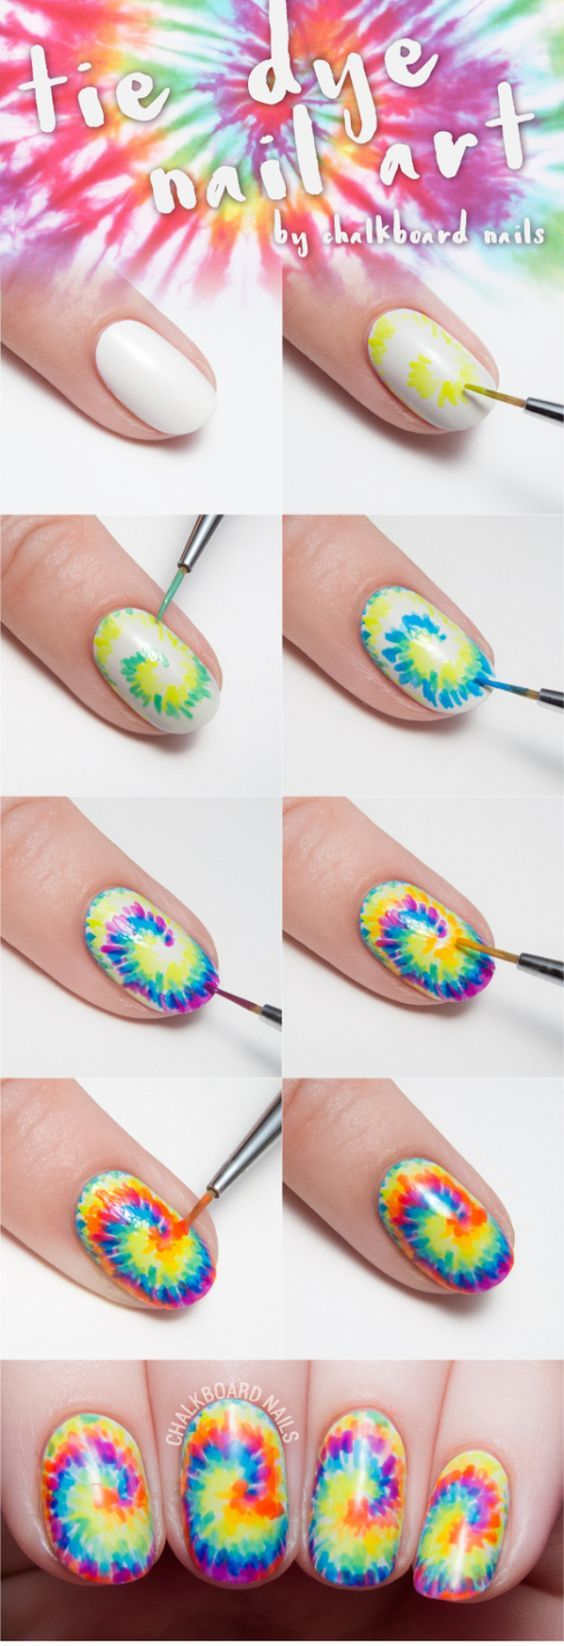 Awesome Nail Art Patterns And Ideas - Tie Dye Nail Art - Step by Step DIY Nail…